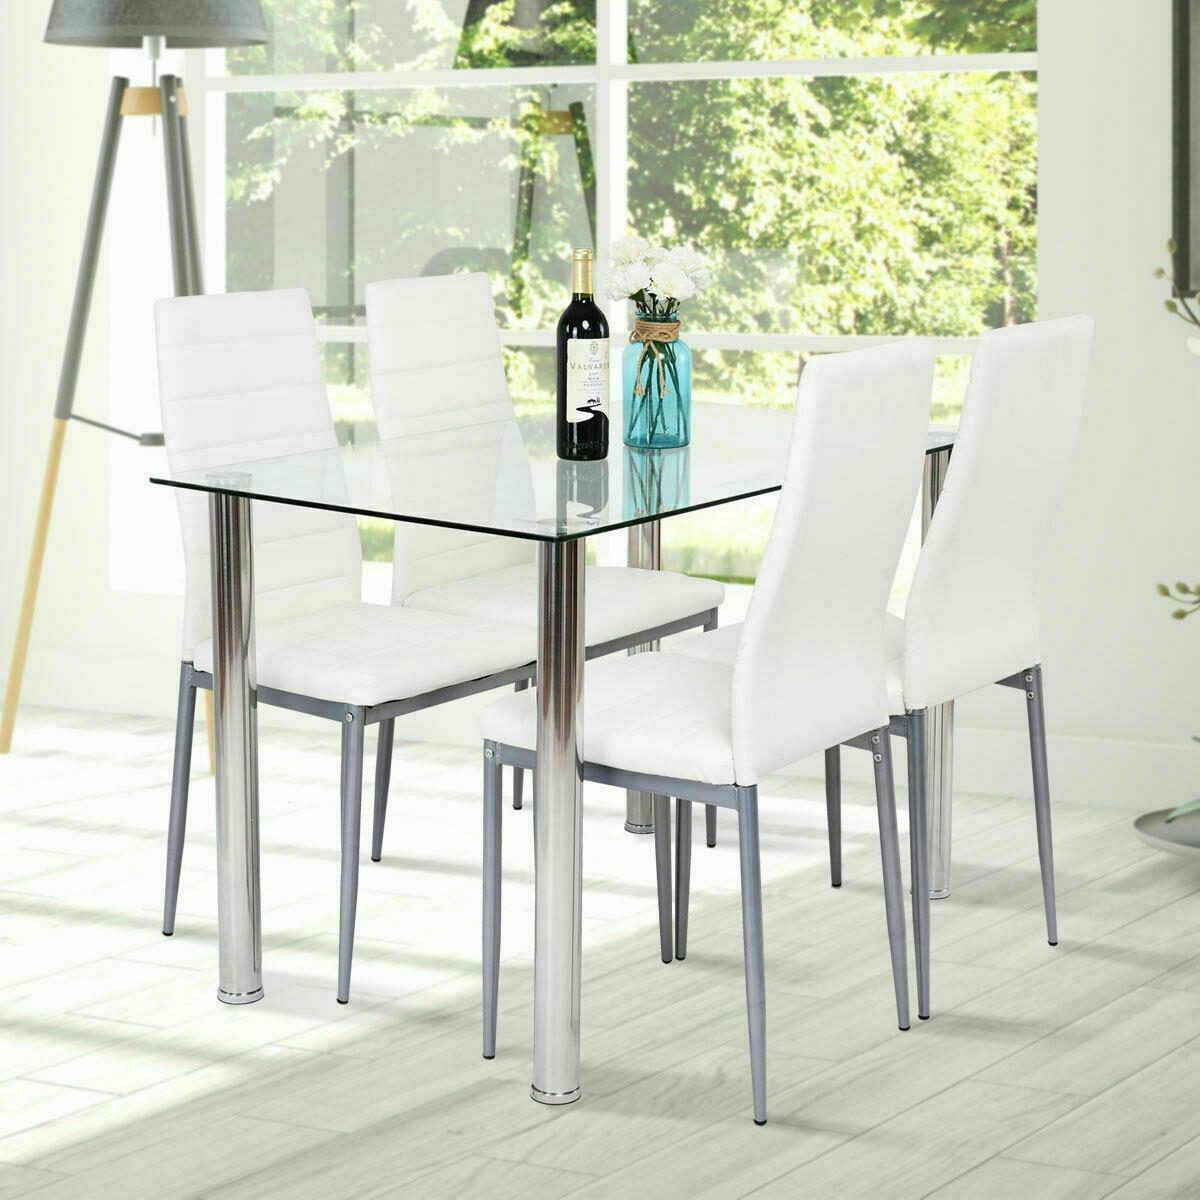 5 Piece Dining Set Glass Table  & 4 Chairs White PU Leather